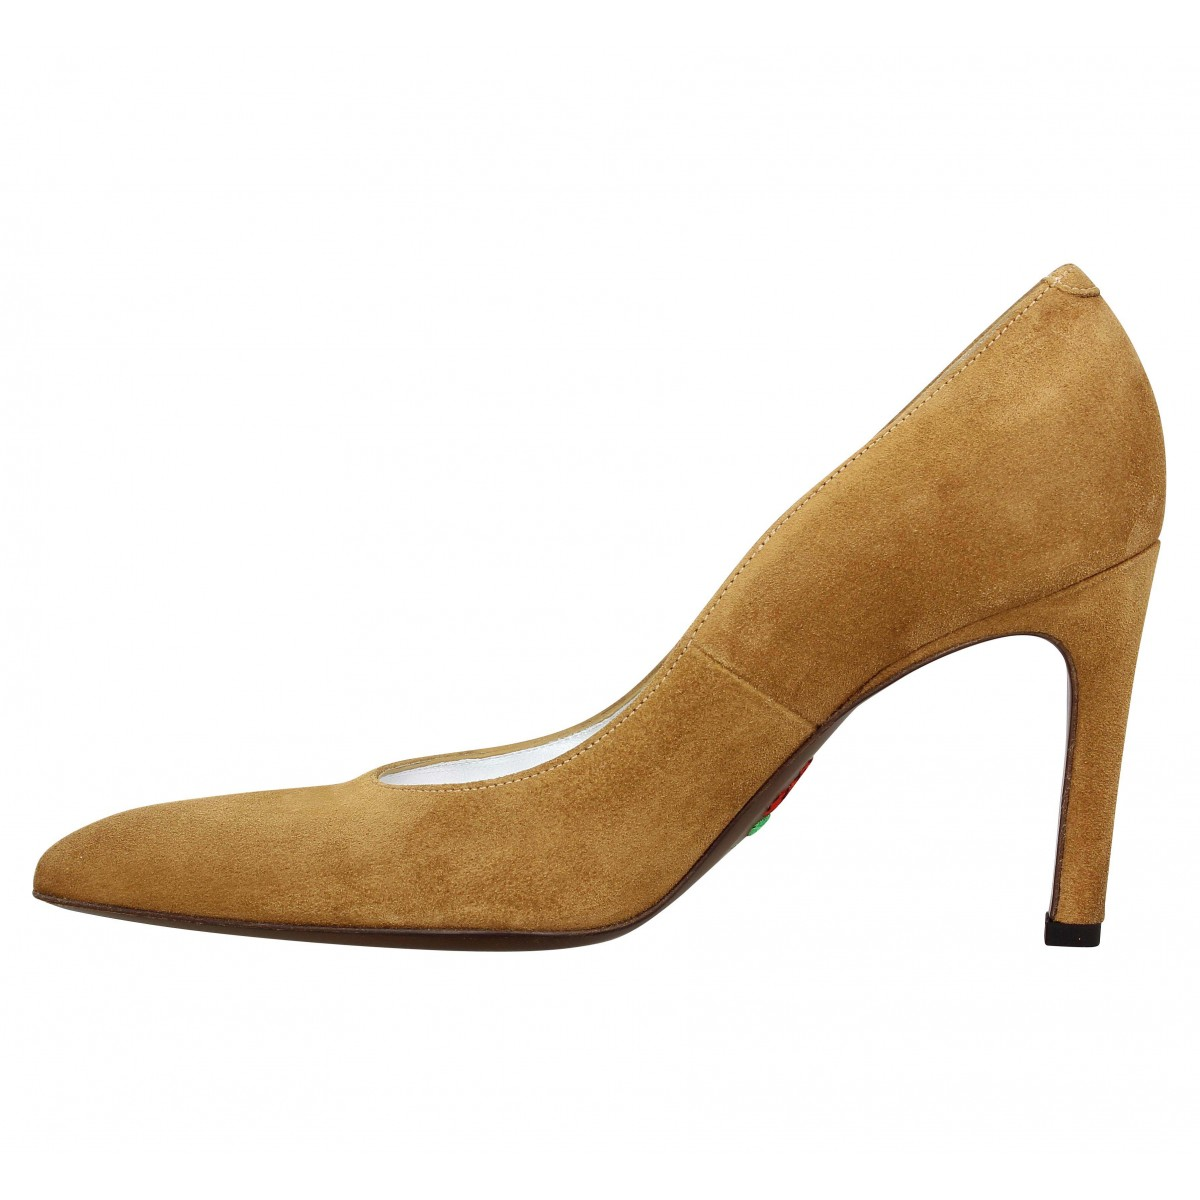 new products 30b7c fab30 Escarpins FREE LANCE Forel 7 Pumps velours Femme Caramel. 1